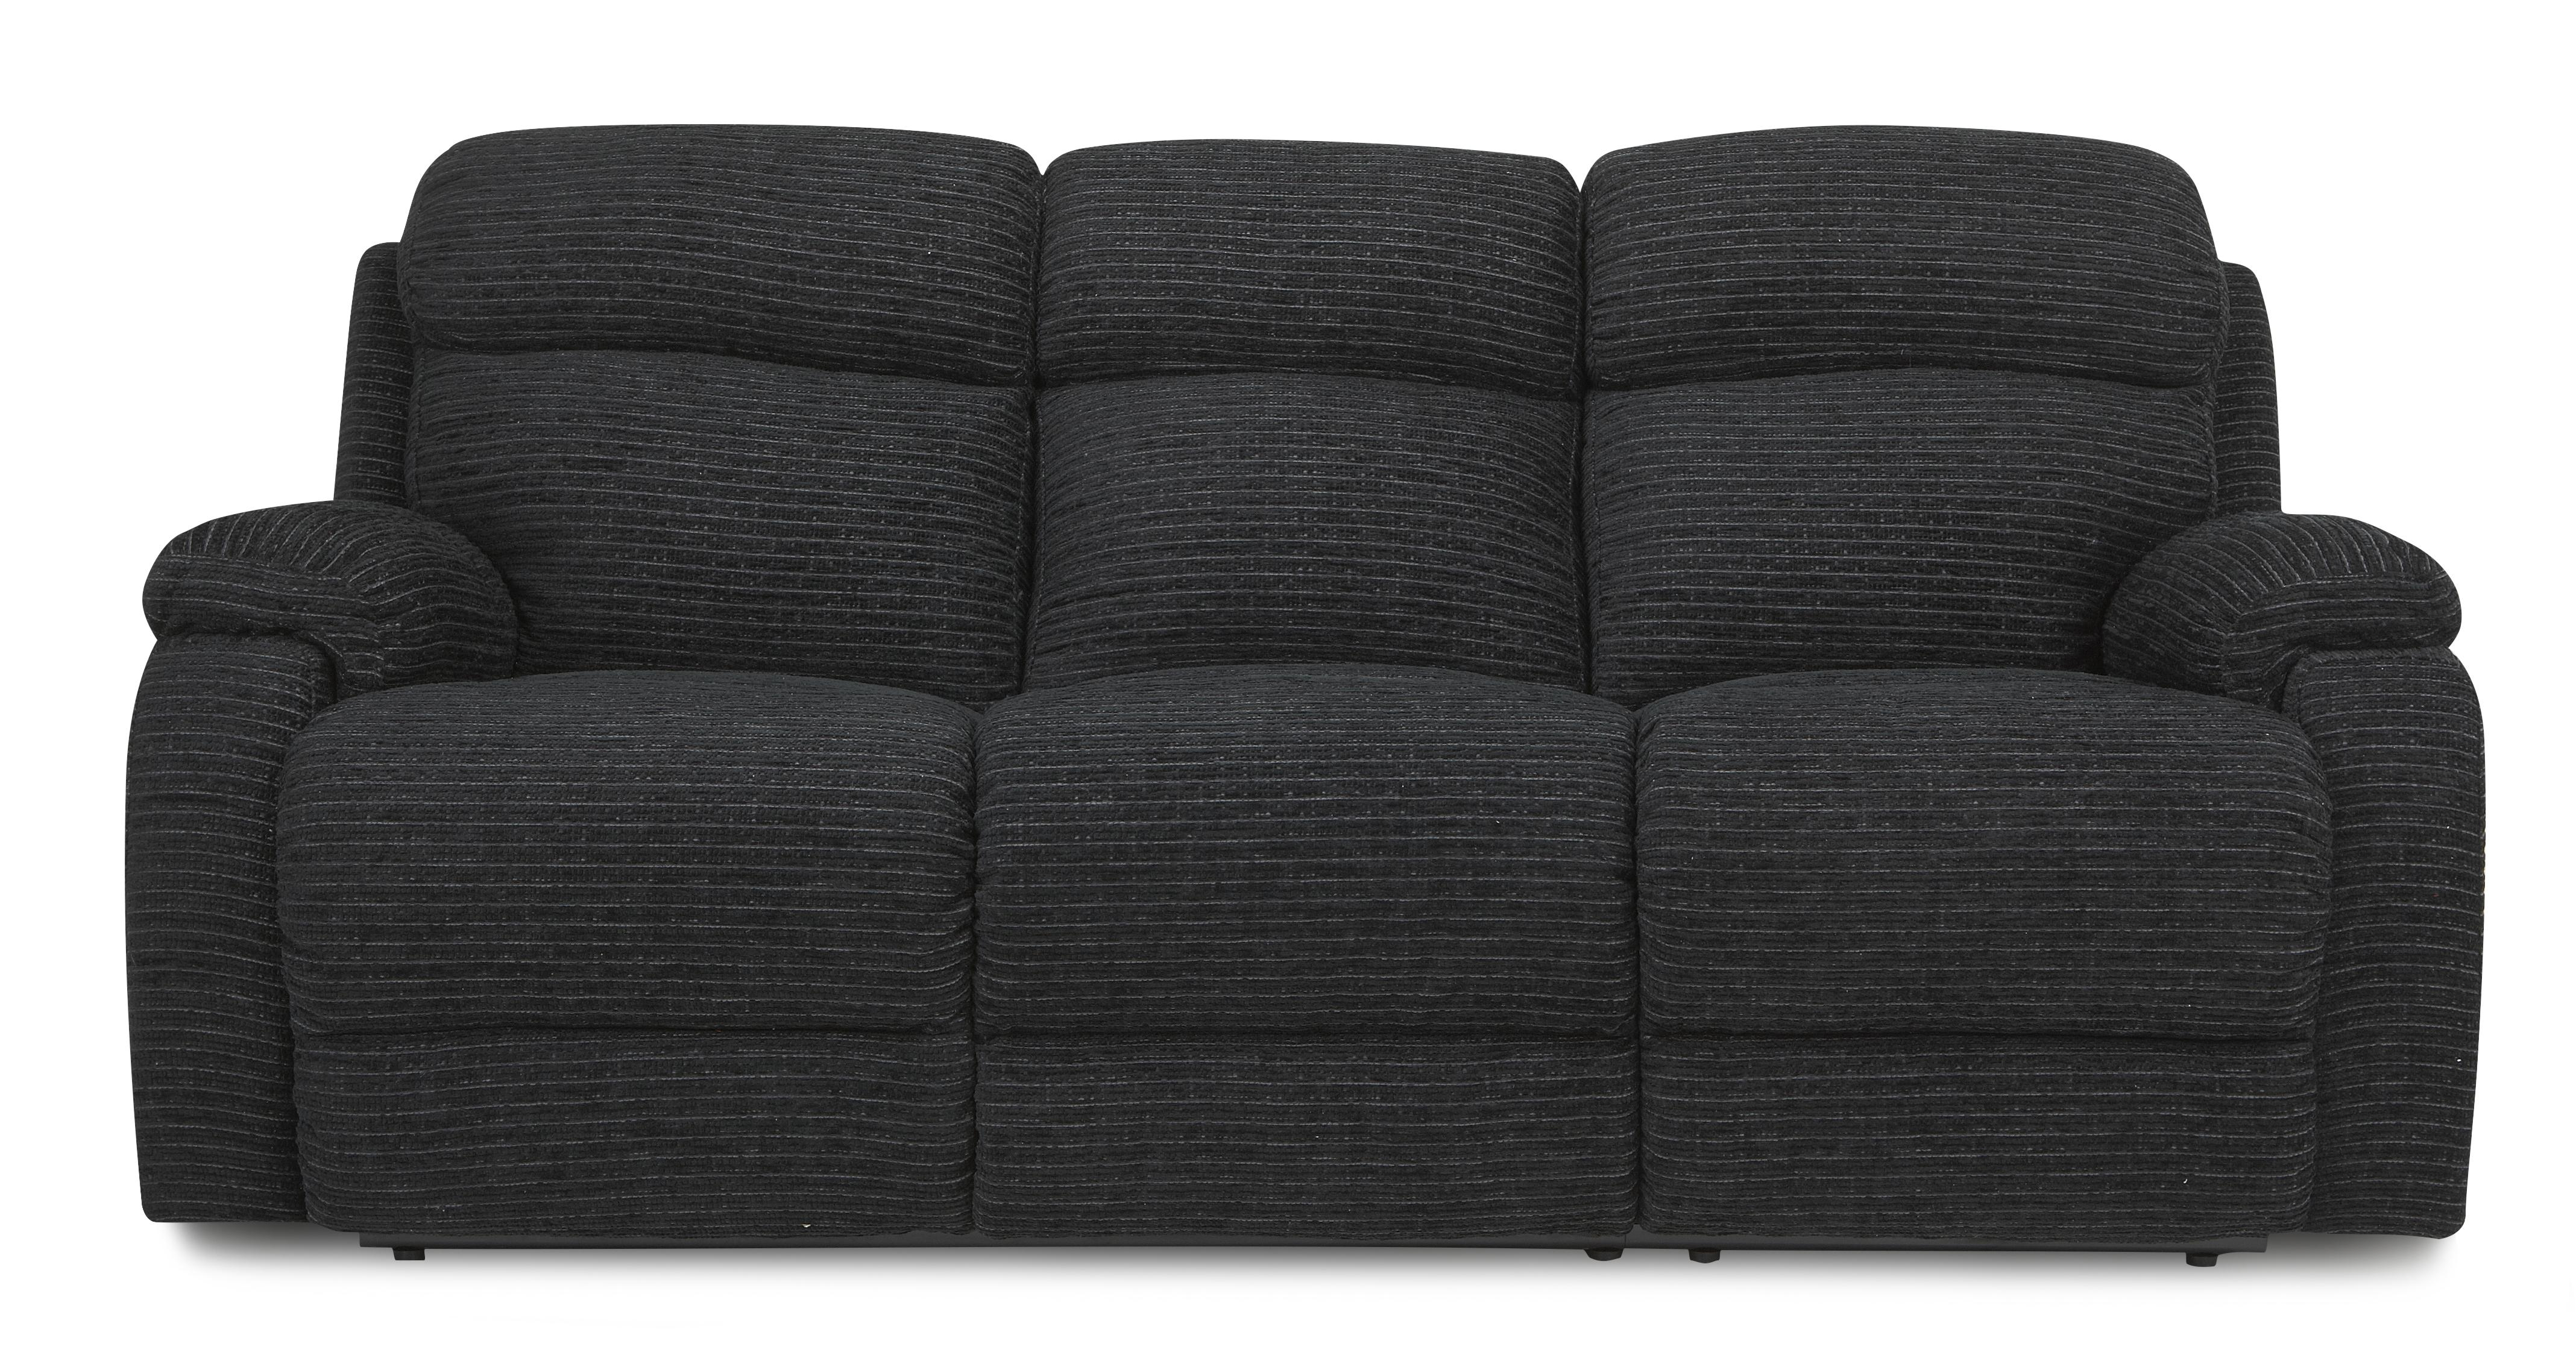 dfs recliner sofa bed small white curved barford black setteefabric couch 3 seater manual